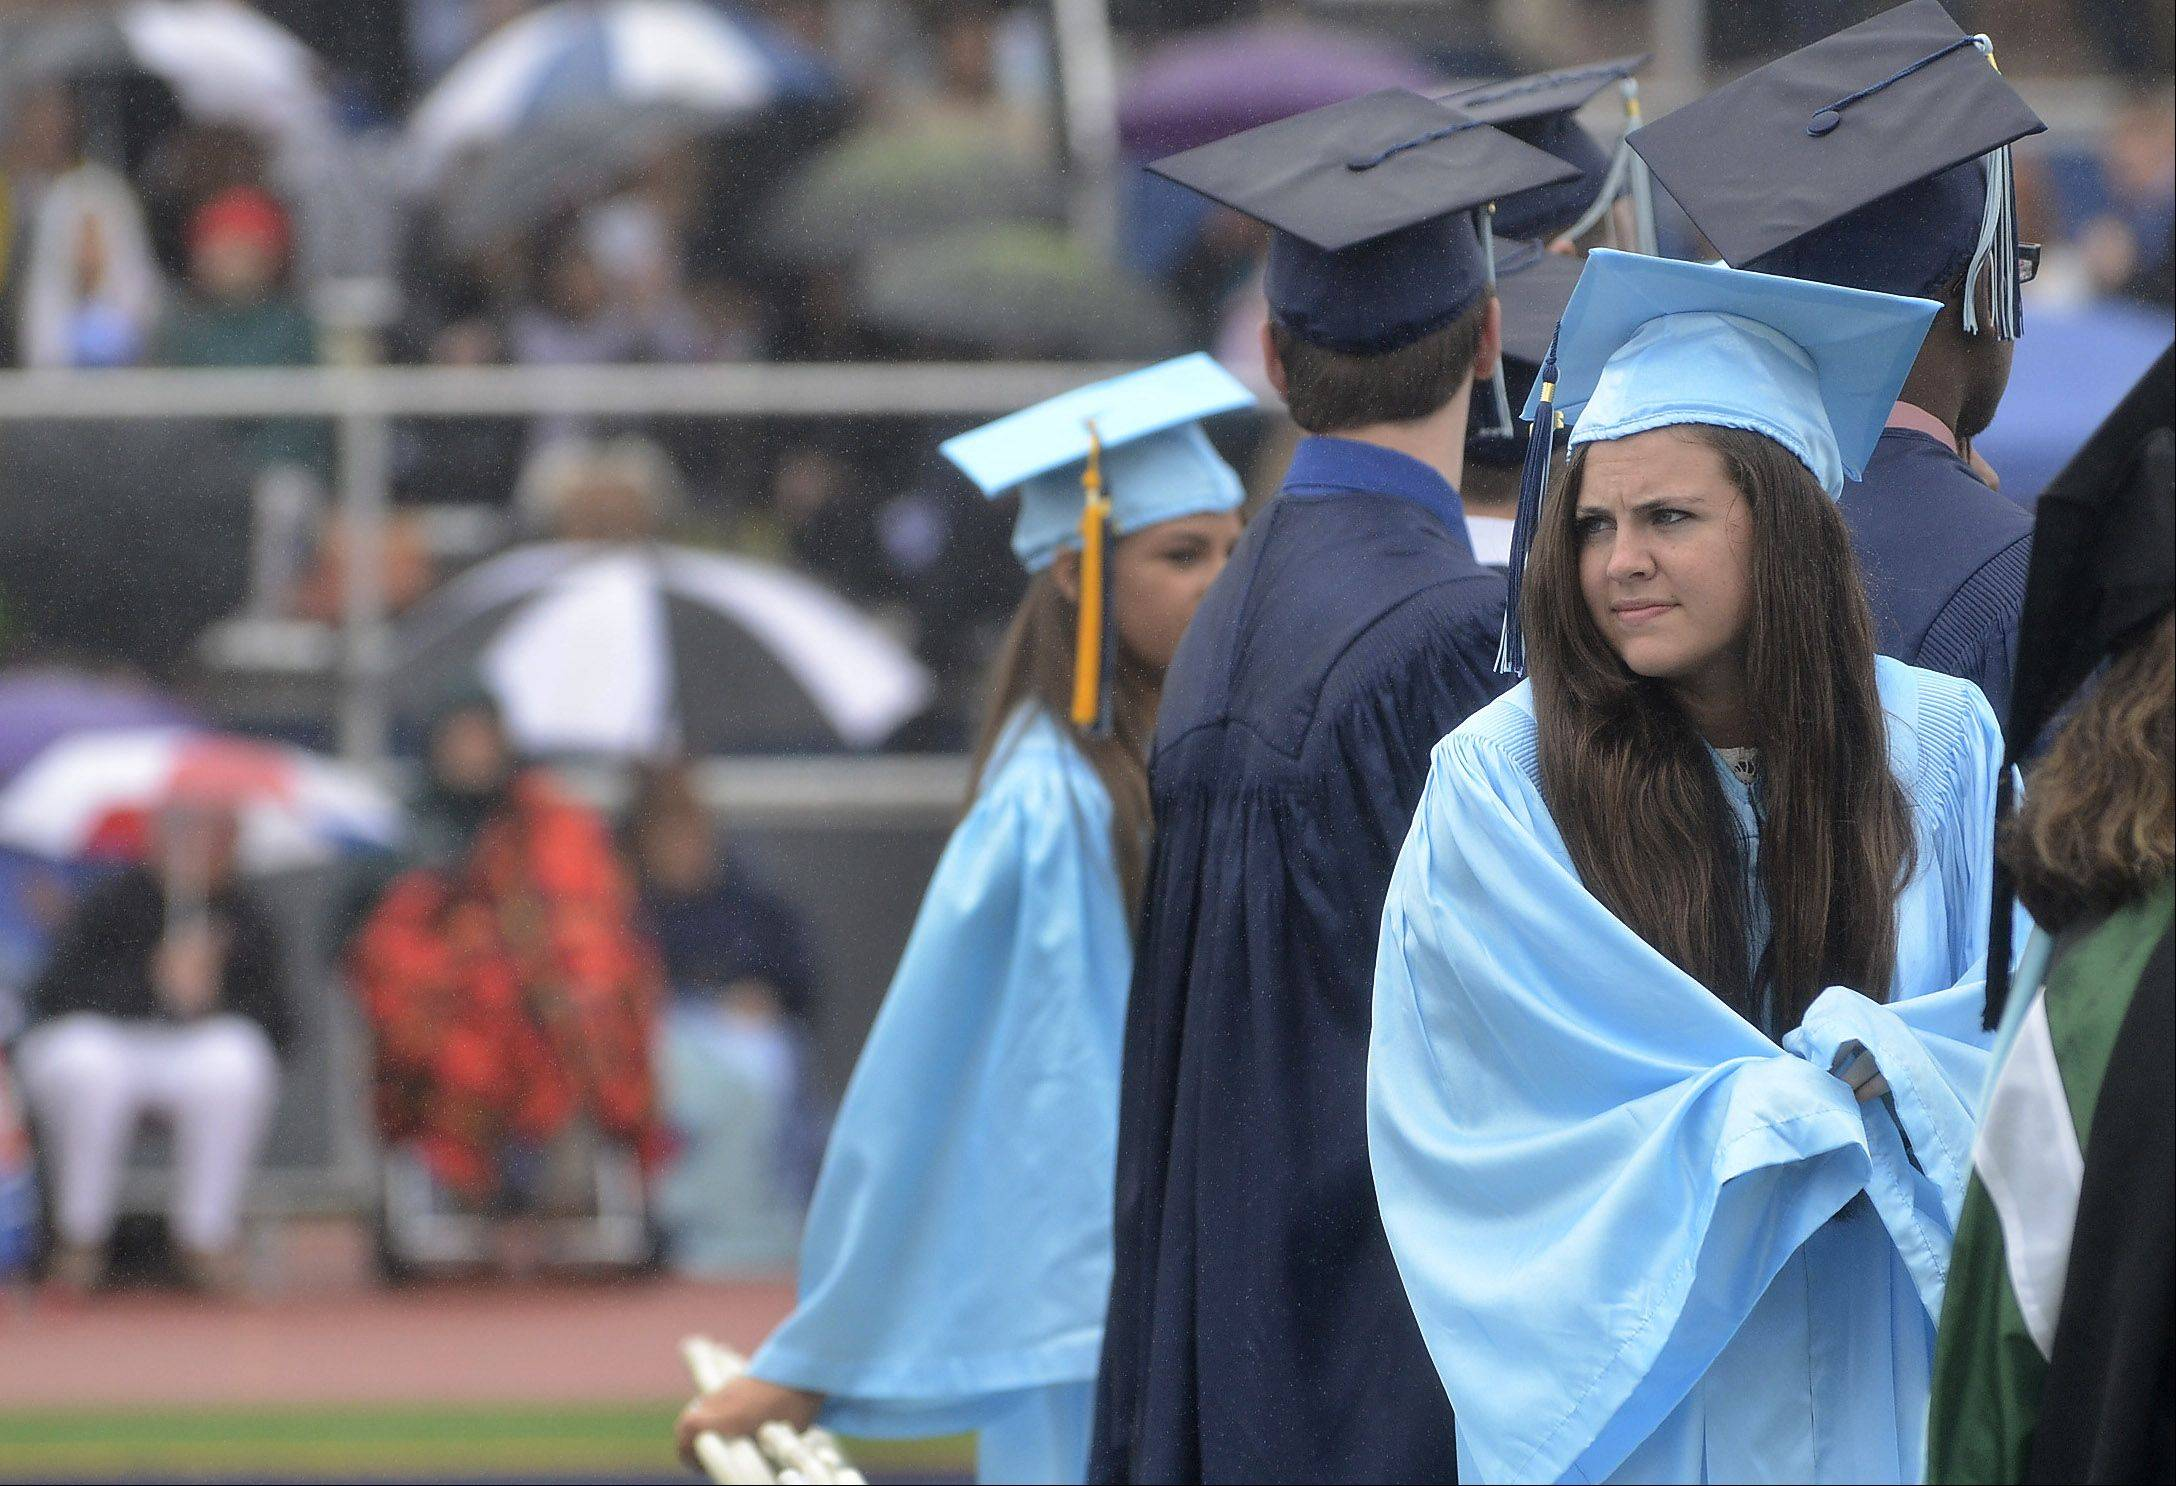 Dawn Grimm, right, weathers the rain during the Prospect High School graduation.